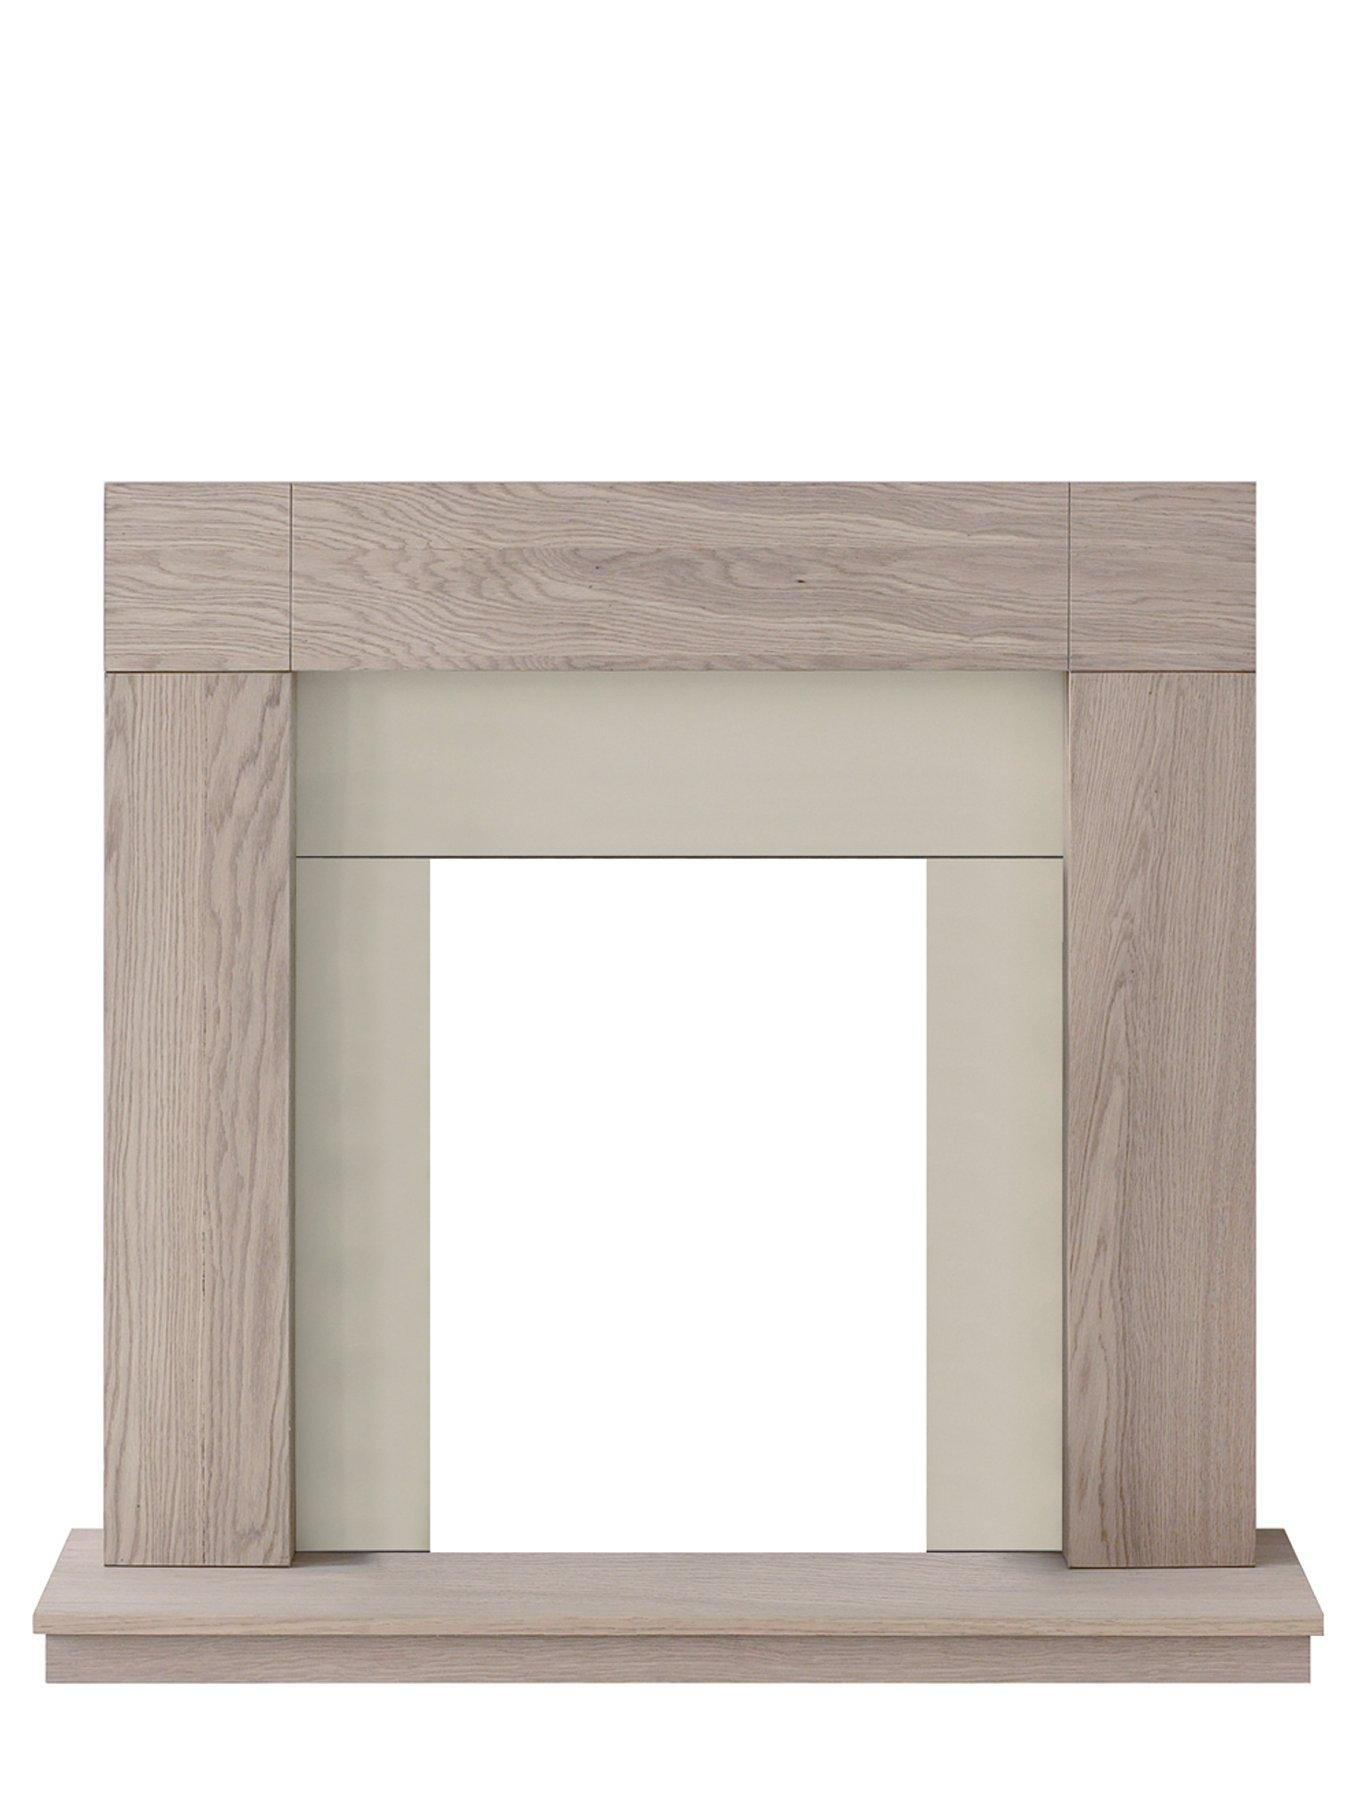 Compare prices for Adam Fire Surrounds Malmo Unfinished Oak Fire Surround